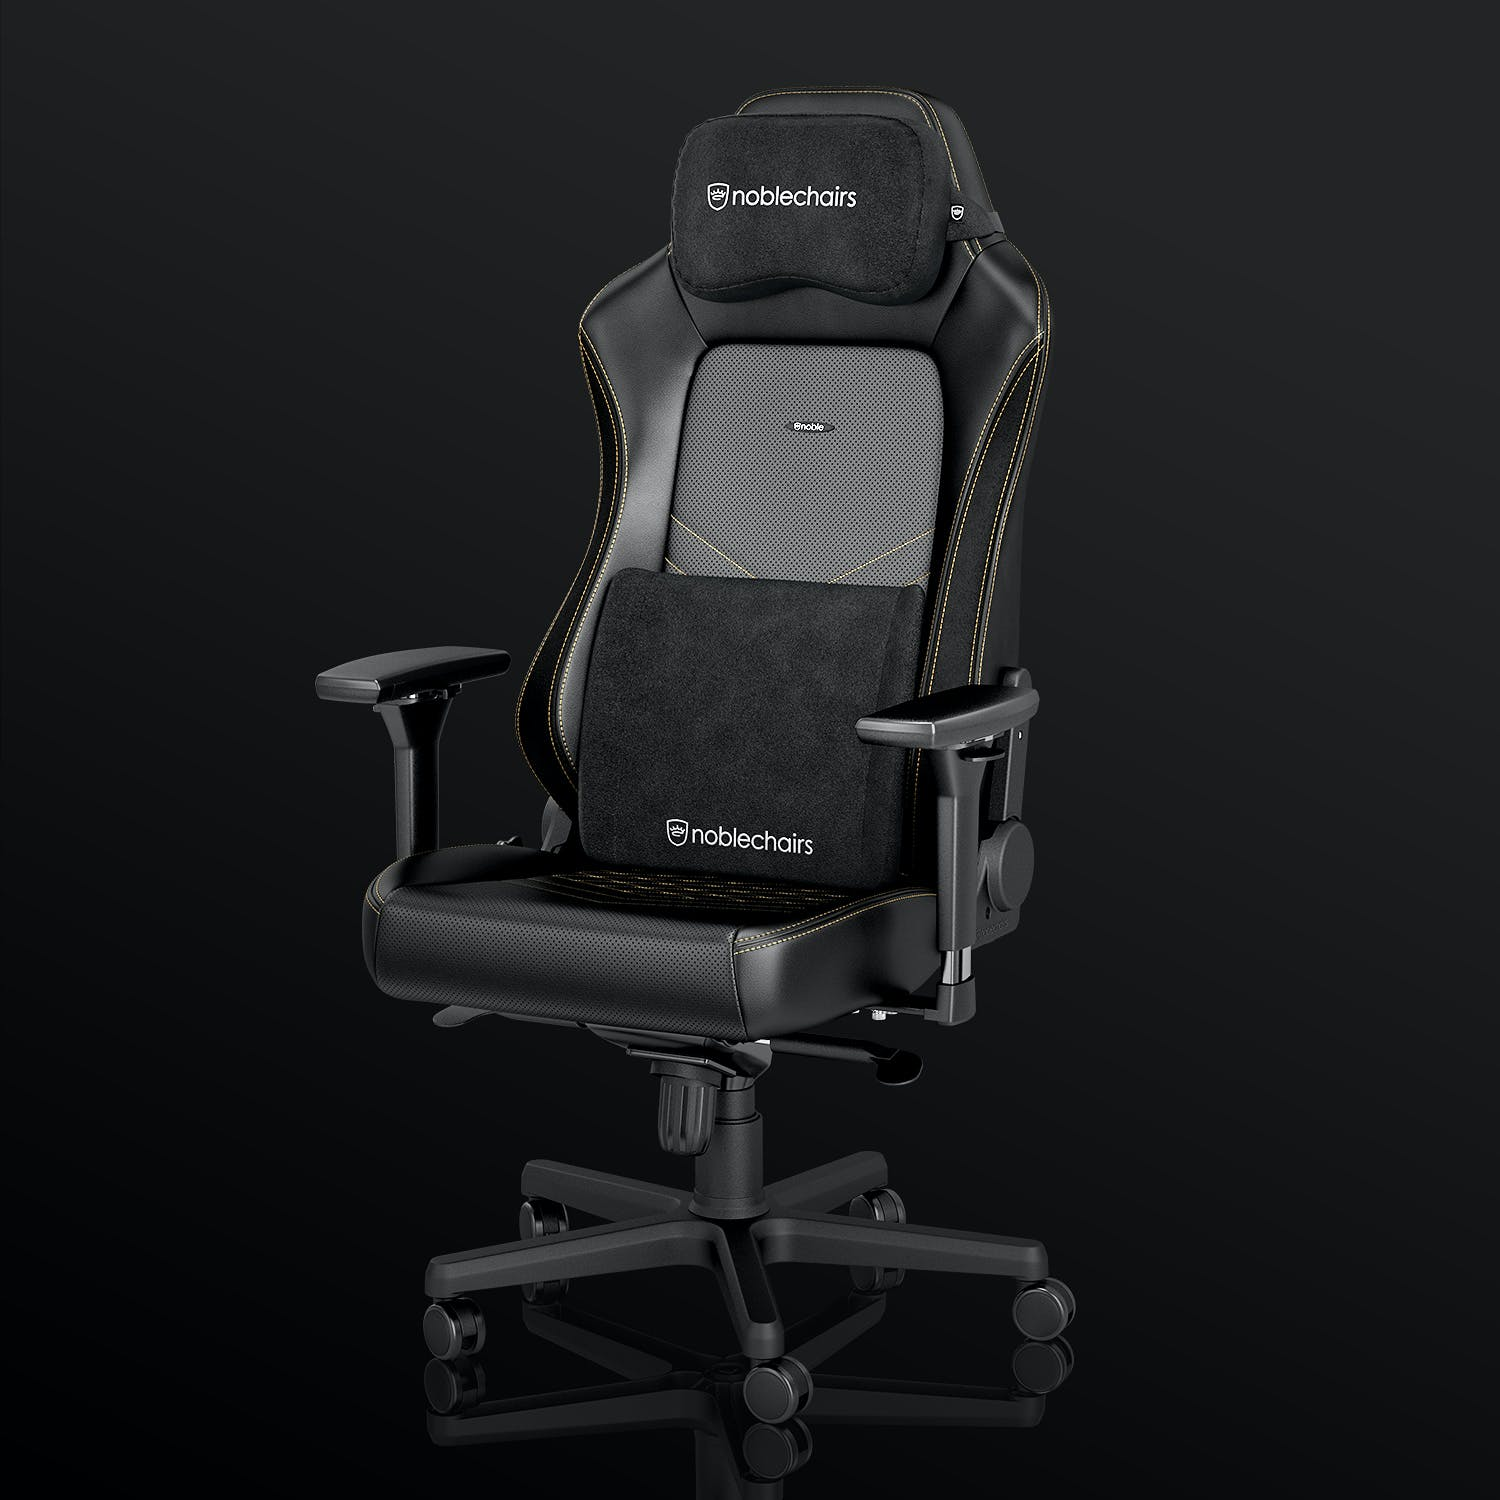 Noblechairs - Memory Foam Kissen-Set